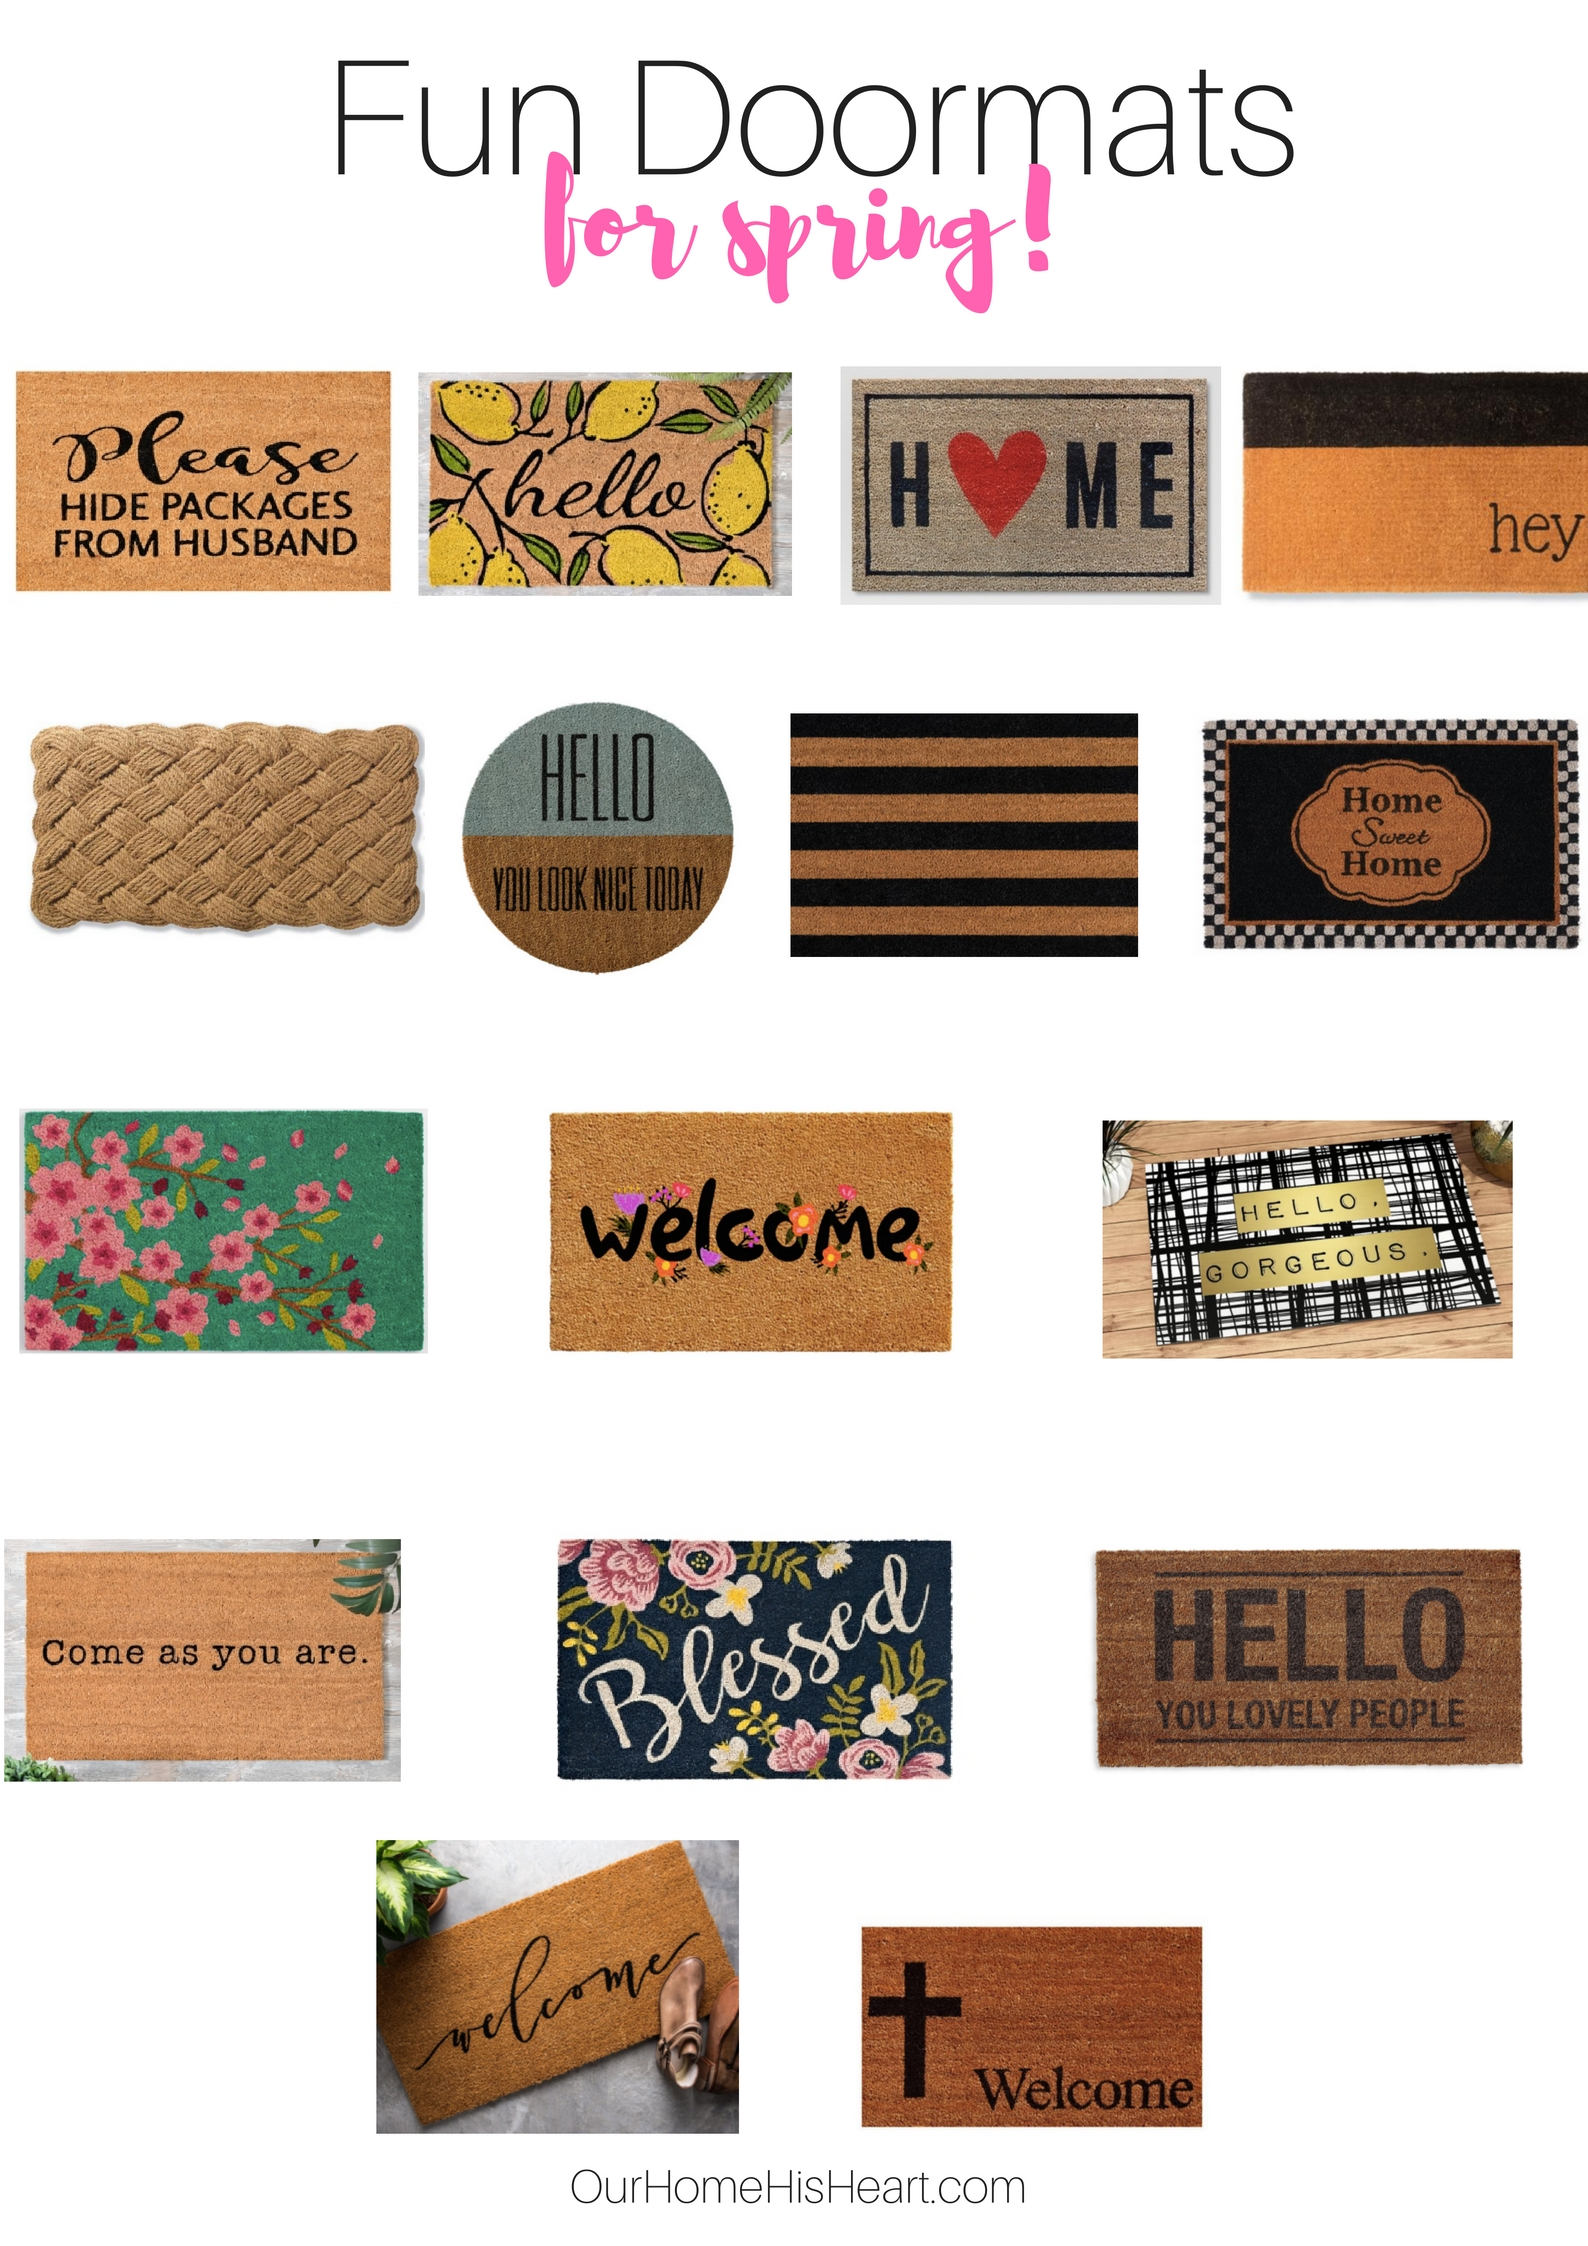 Fun Doormats for Spring